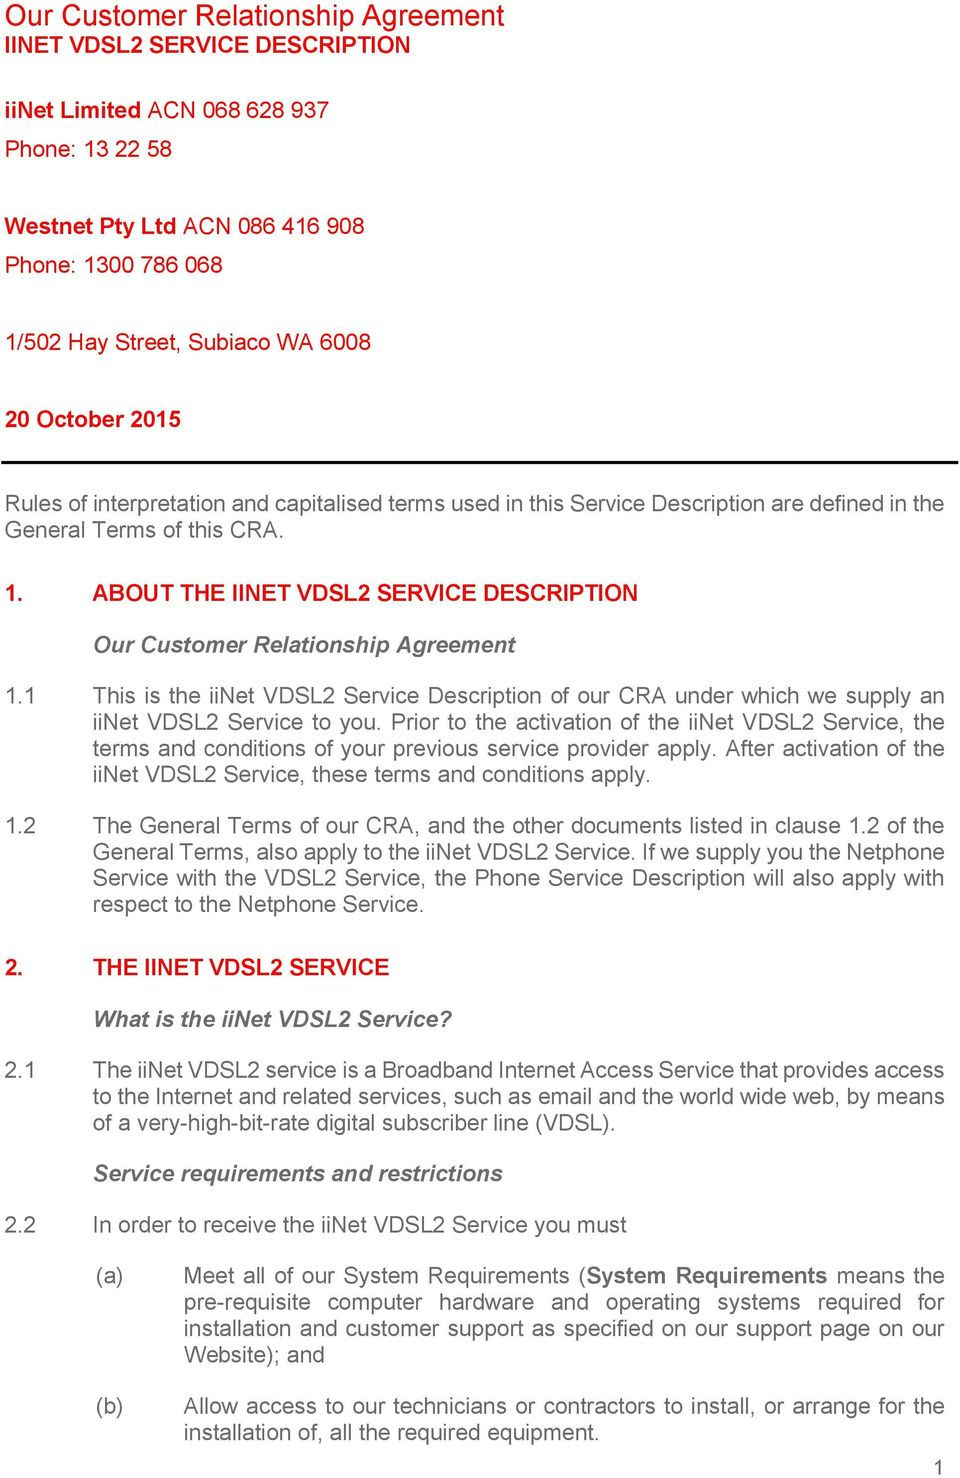 ABOUT THE IINET VDSL2 SERVICE DESCRIPTION Our Customer Relationship Agreement 1.1 This is the iinet VDSL2 Service Description of our CRA under which we supply an iinet VDSL2 Service to you.